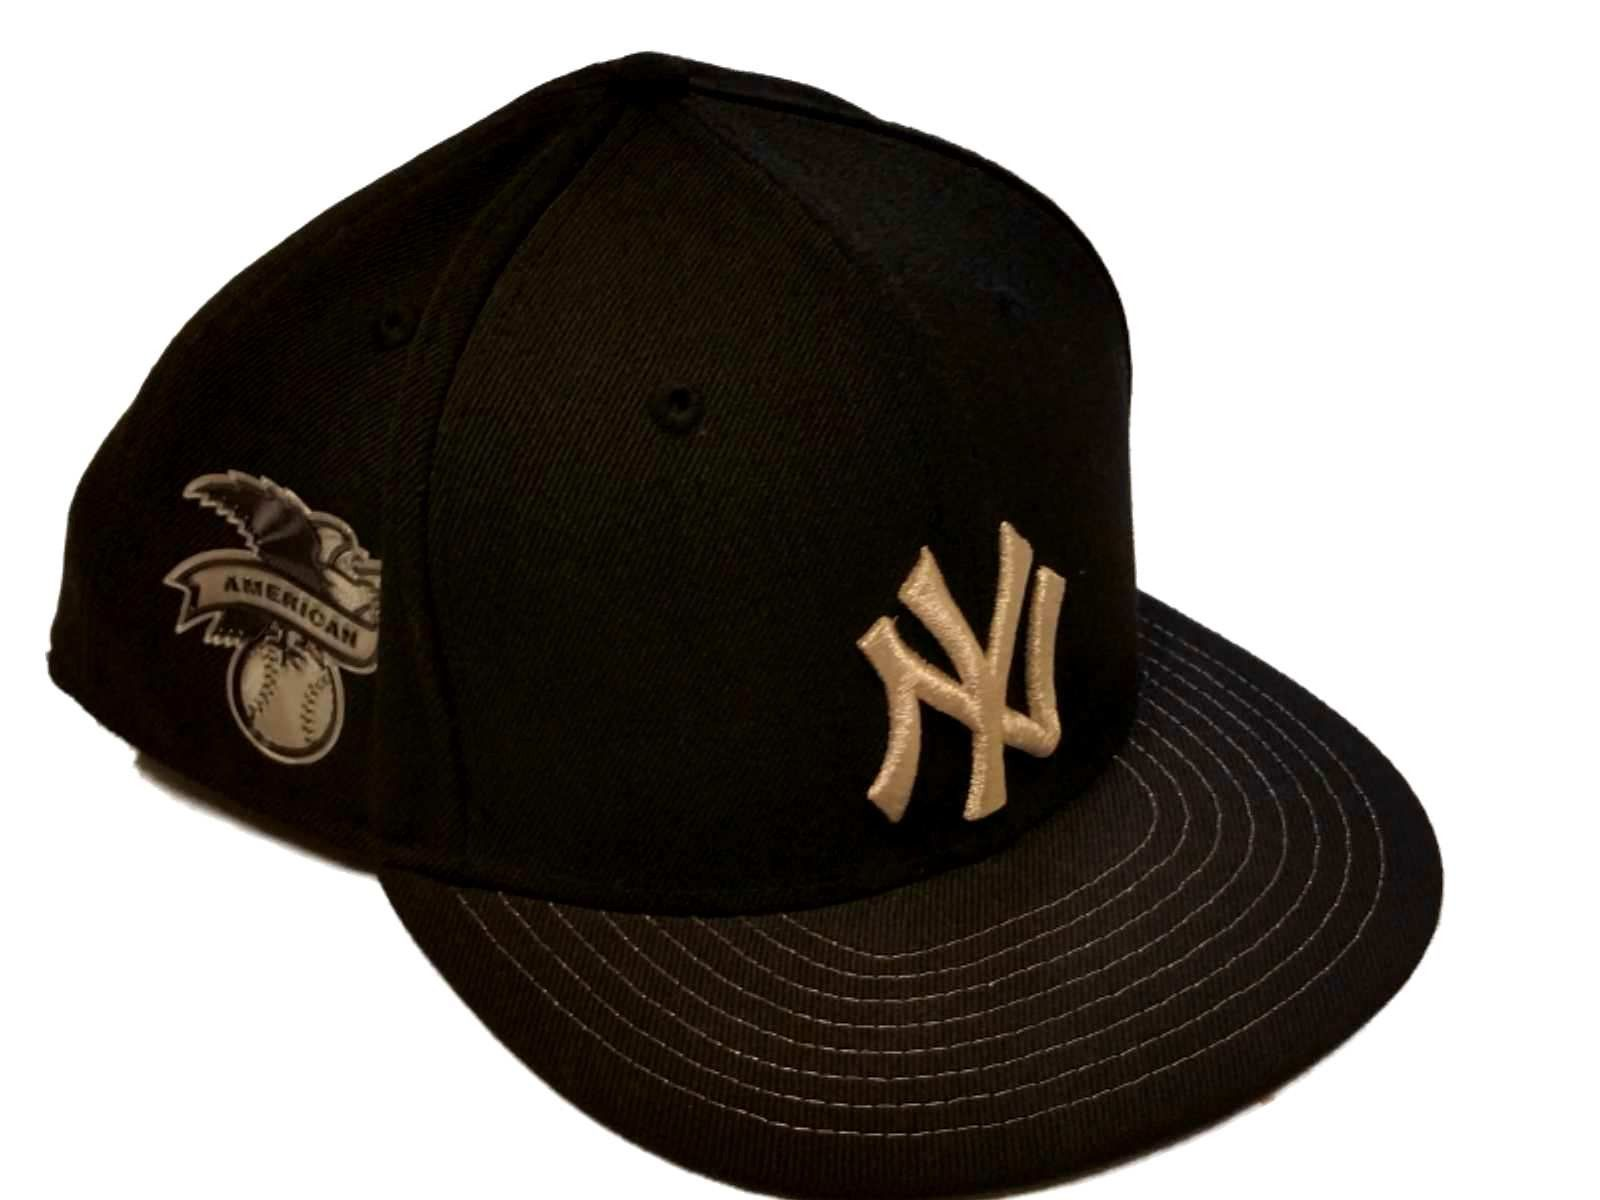 New Era New York Yankees 5950 Fitted Hat Black /& red Perforated Faux Leather Cap